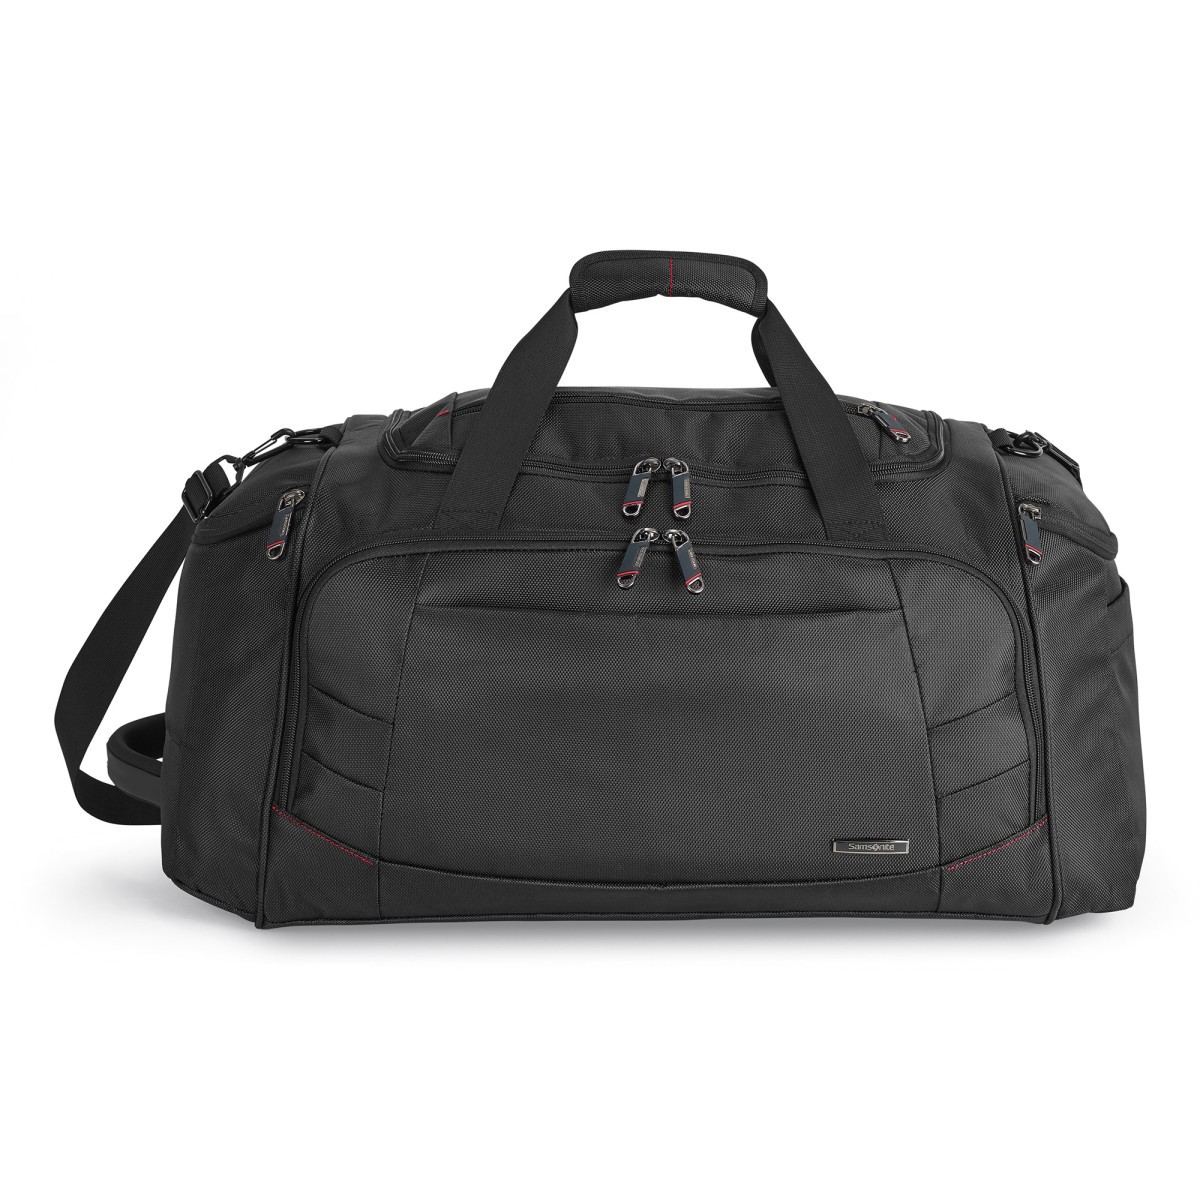 Samsonite Xenon? 2 Travel Bag